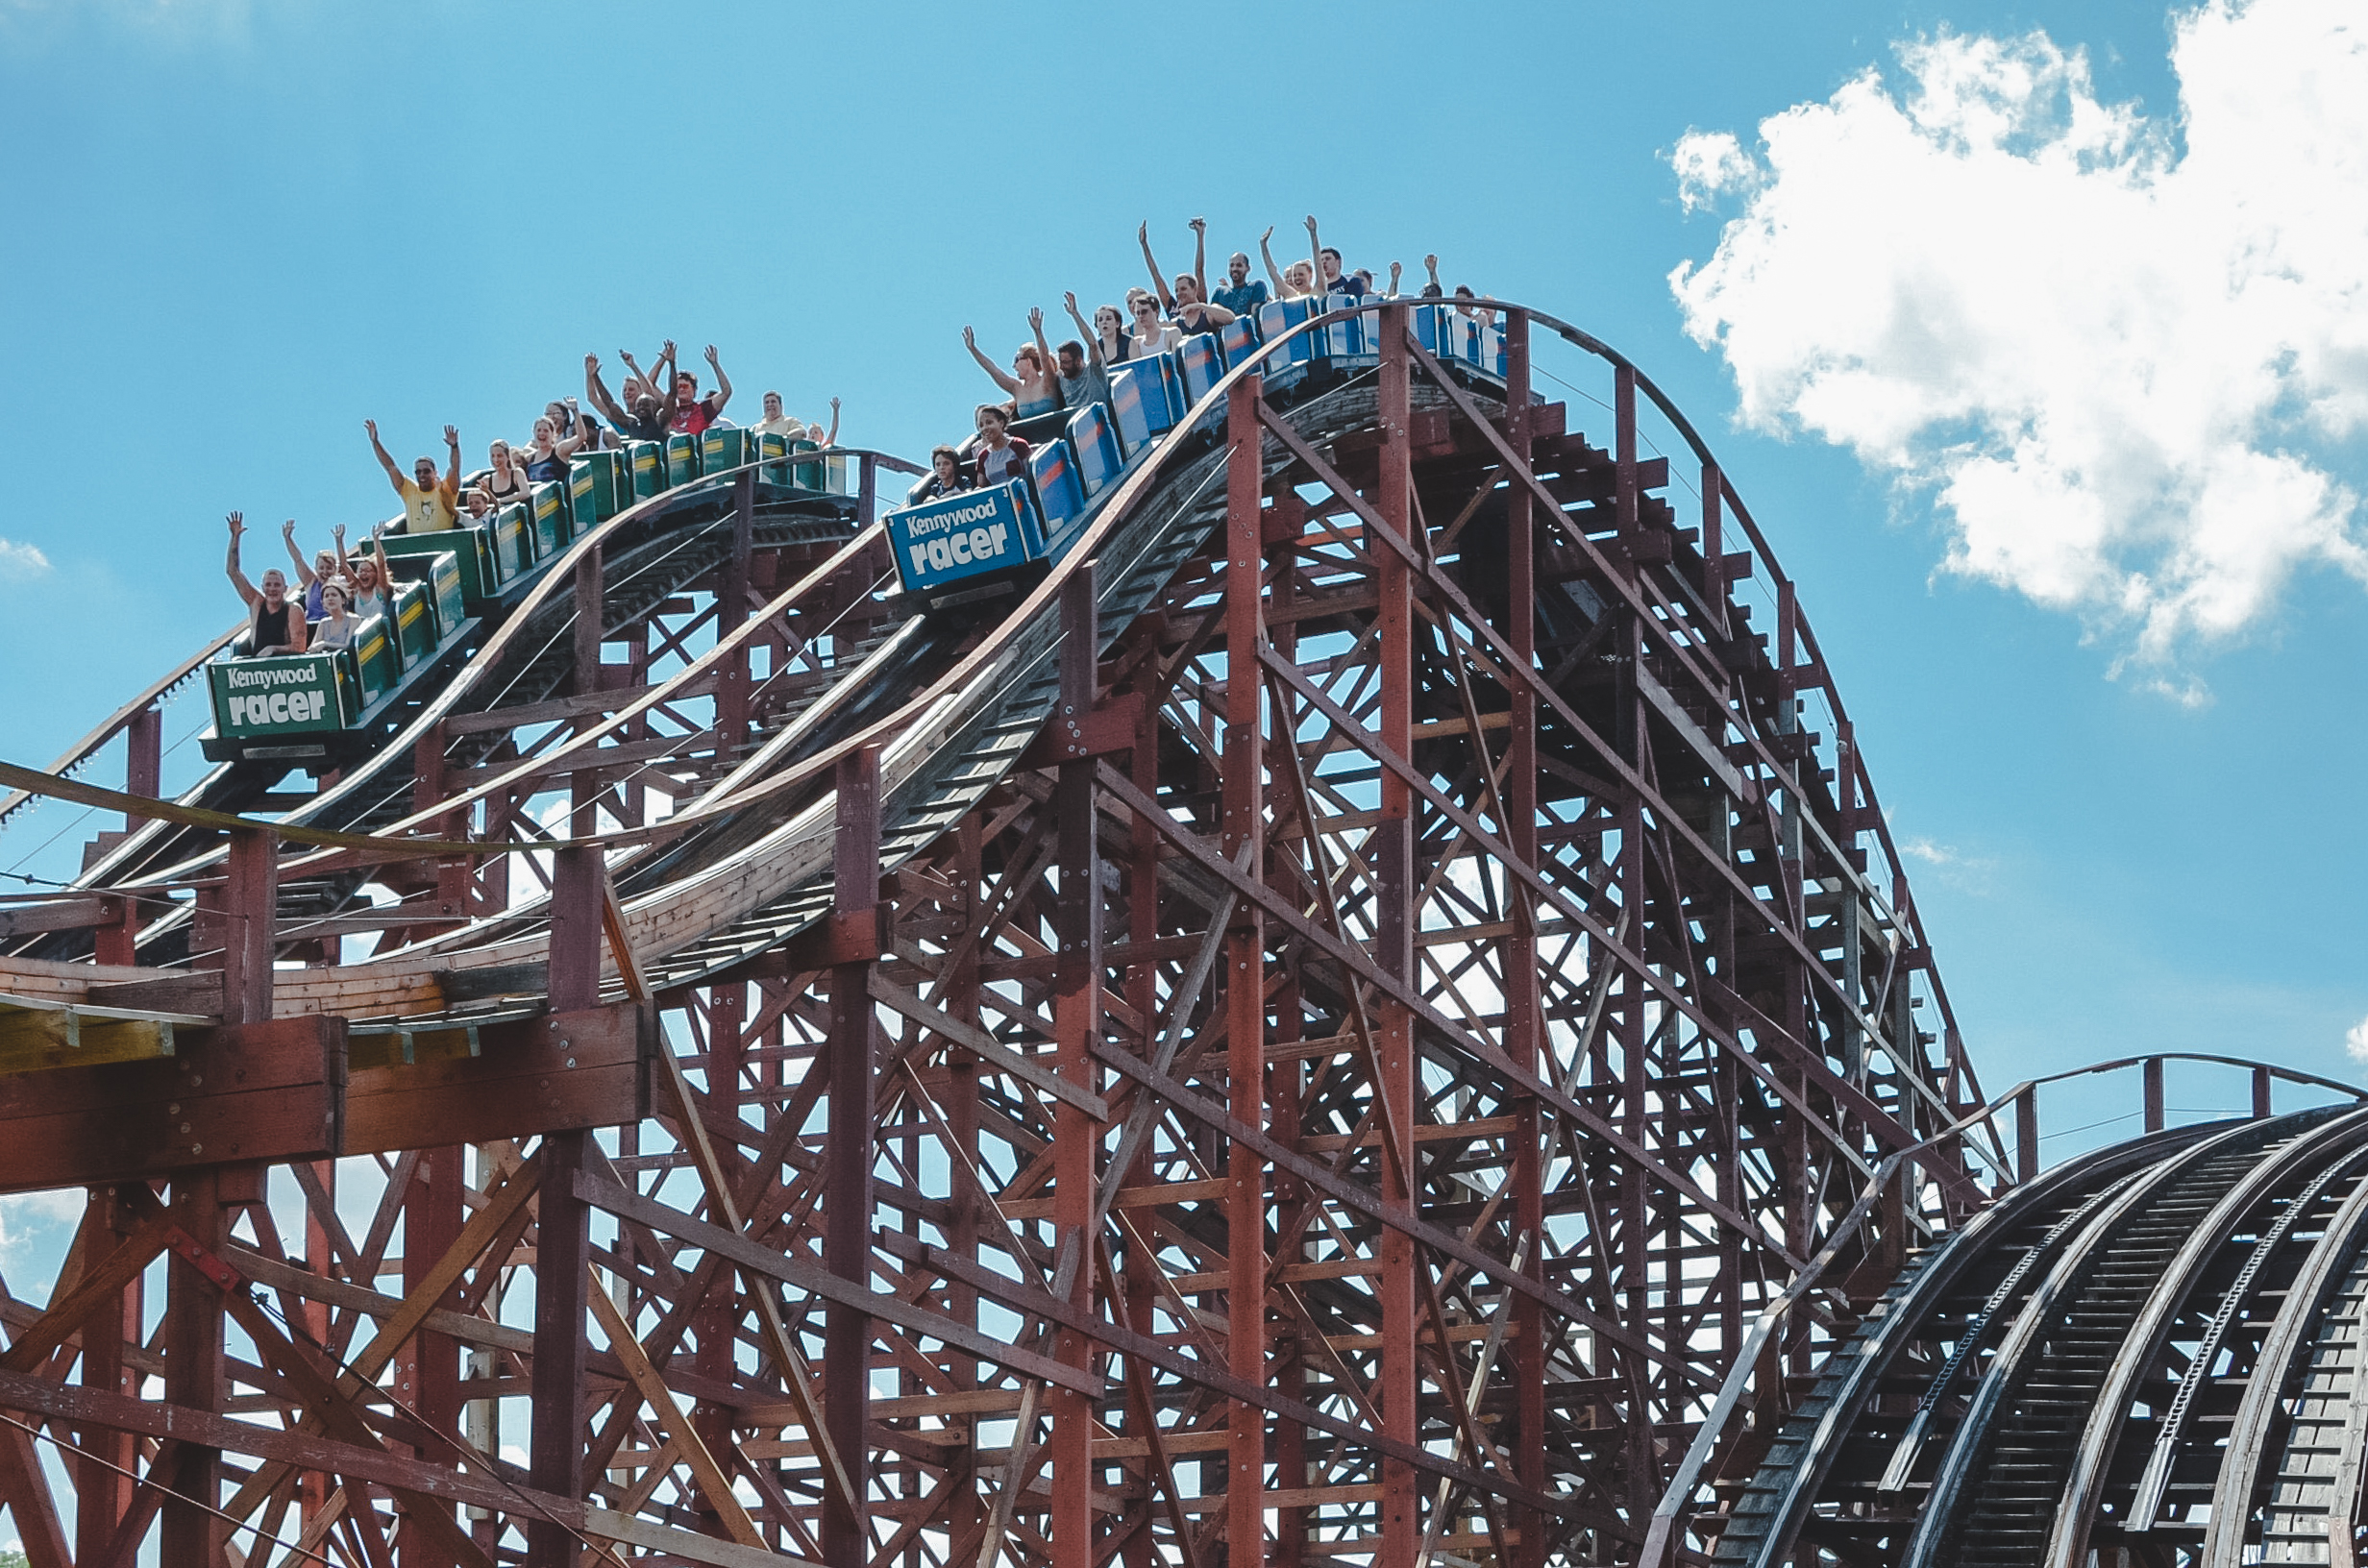 Kennywood's vintage Racer still rocks the coaster scene.